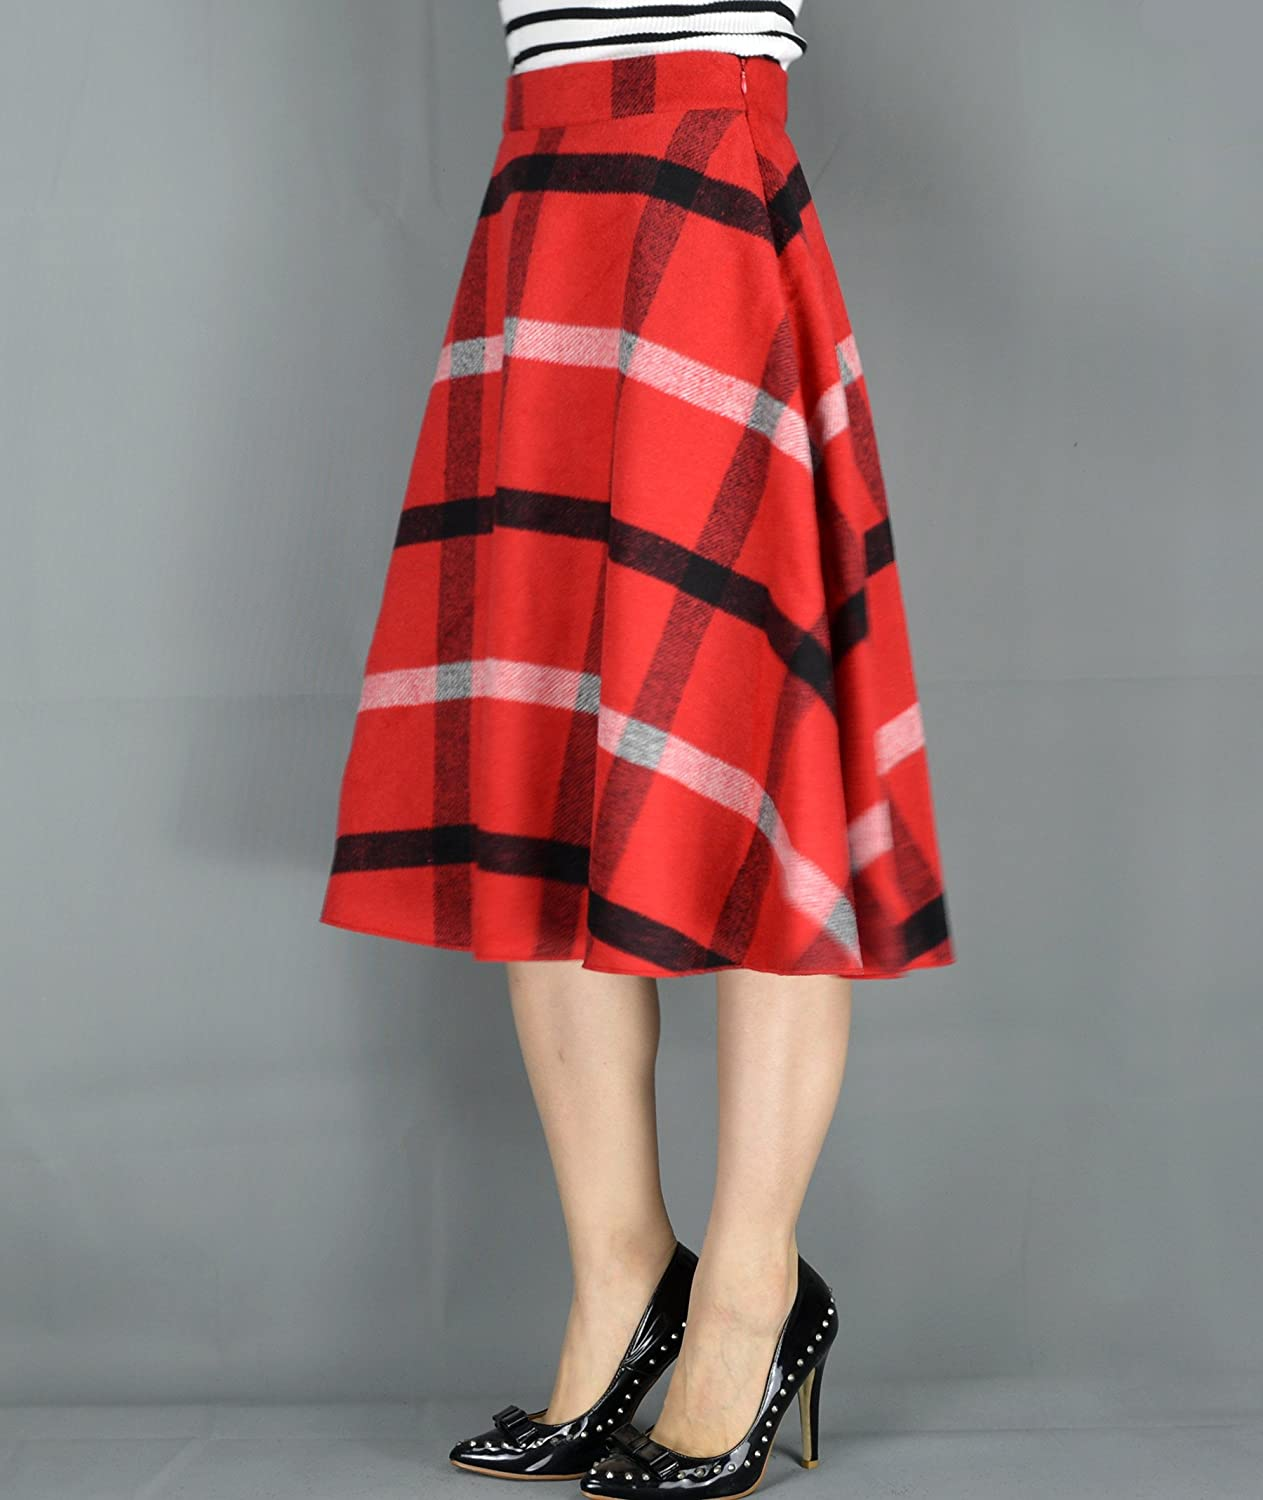 50s Skirt Styles | Poodle Skirts, Circle Skirts, Pencil Skirts 1950s YSJERA Womens Wool Midi Skirt A-Line Pleated Vintage Plaid Winter Swing Skirts $25.99 AT vintagedancer.com